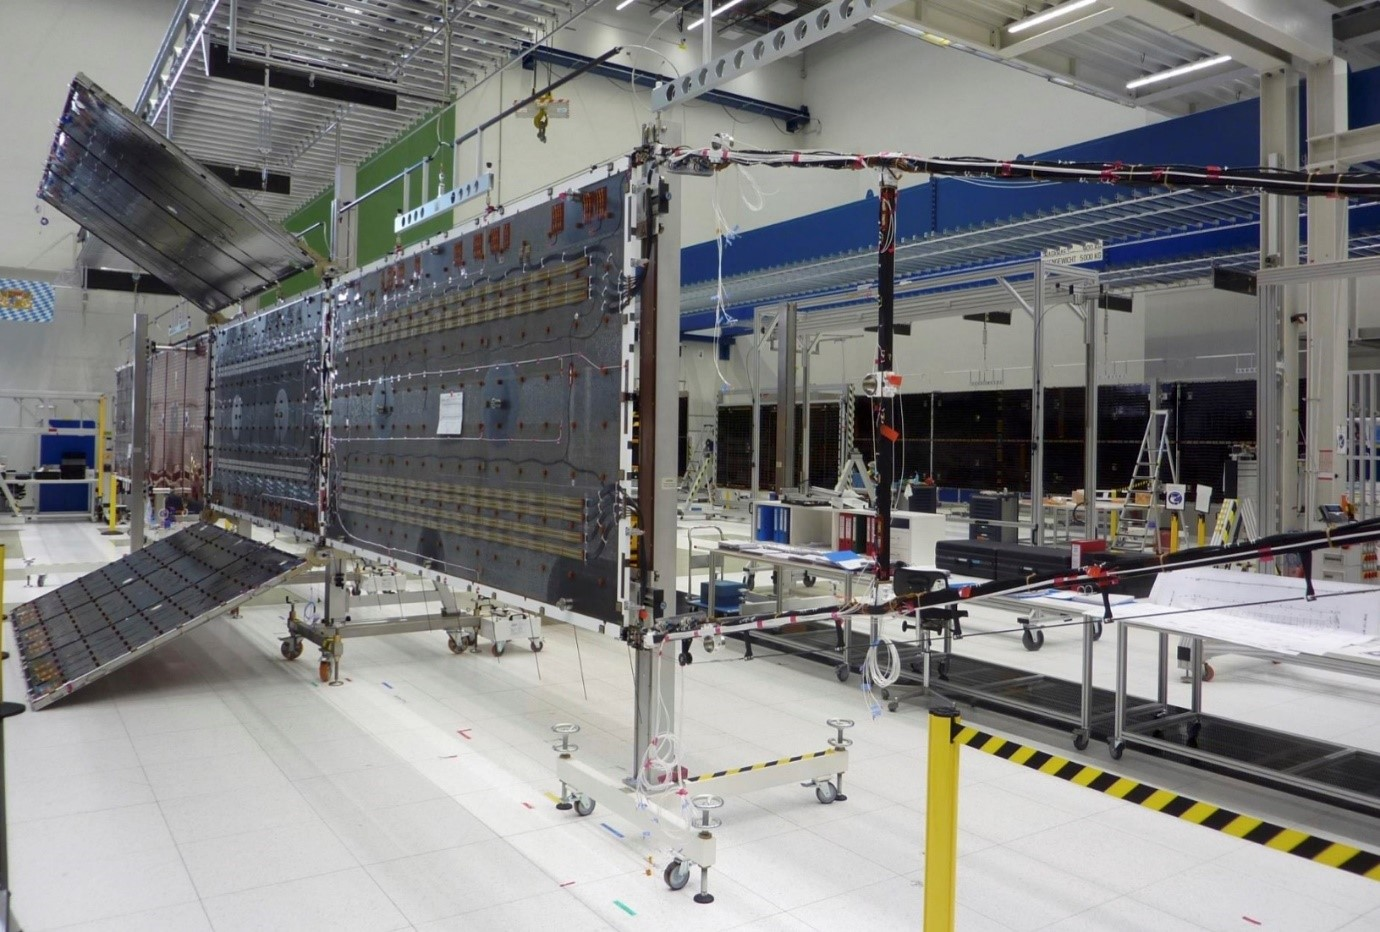 Hybrid Solar Array during deployment testing: the in-line backbone is made up of a conventional solar array, while the lateral panels are lightweight semi-rigid panels (Credit Airbus).